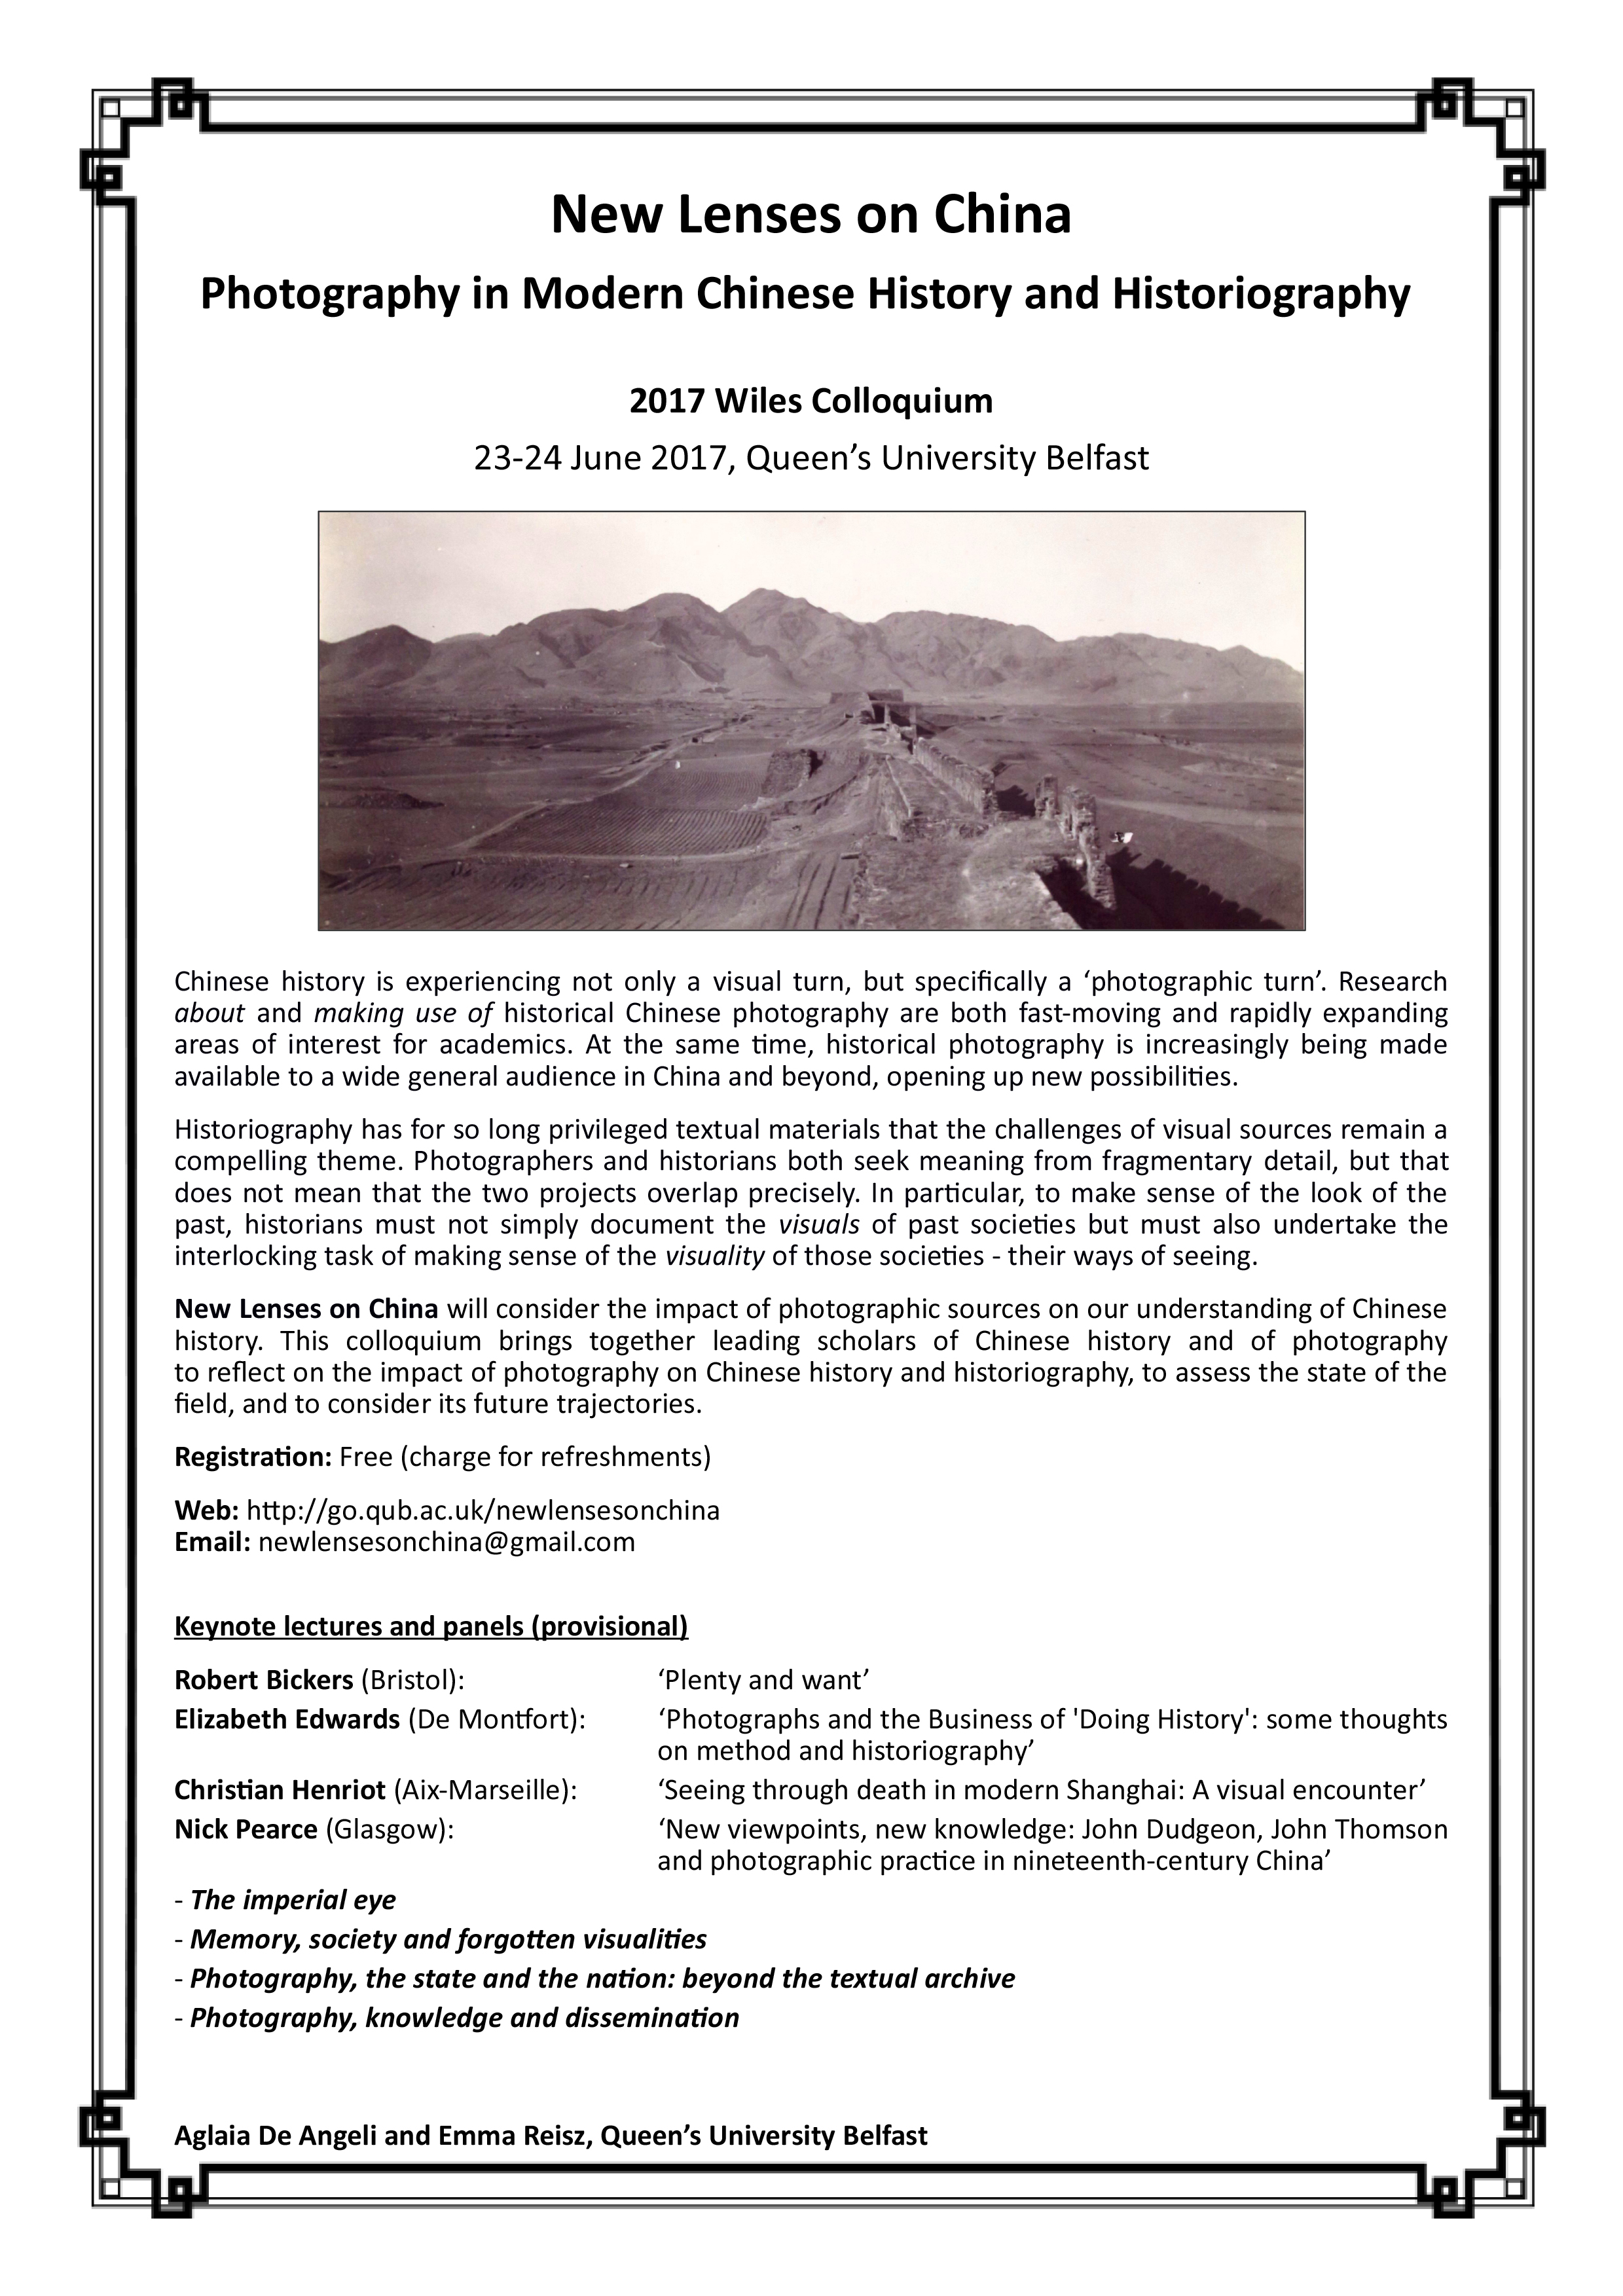 wiles-colloquium-marine-cabos-photography-of-china.jpg